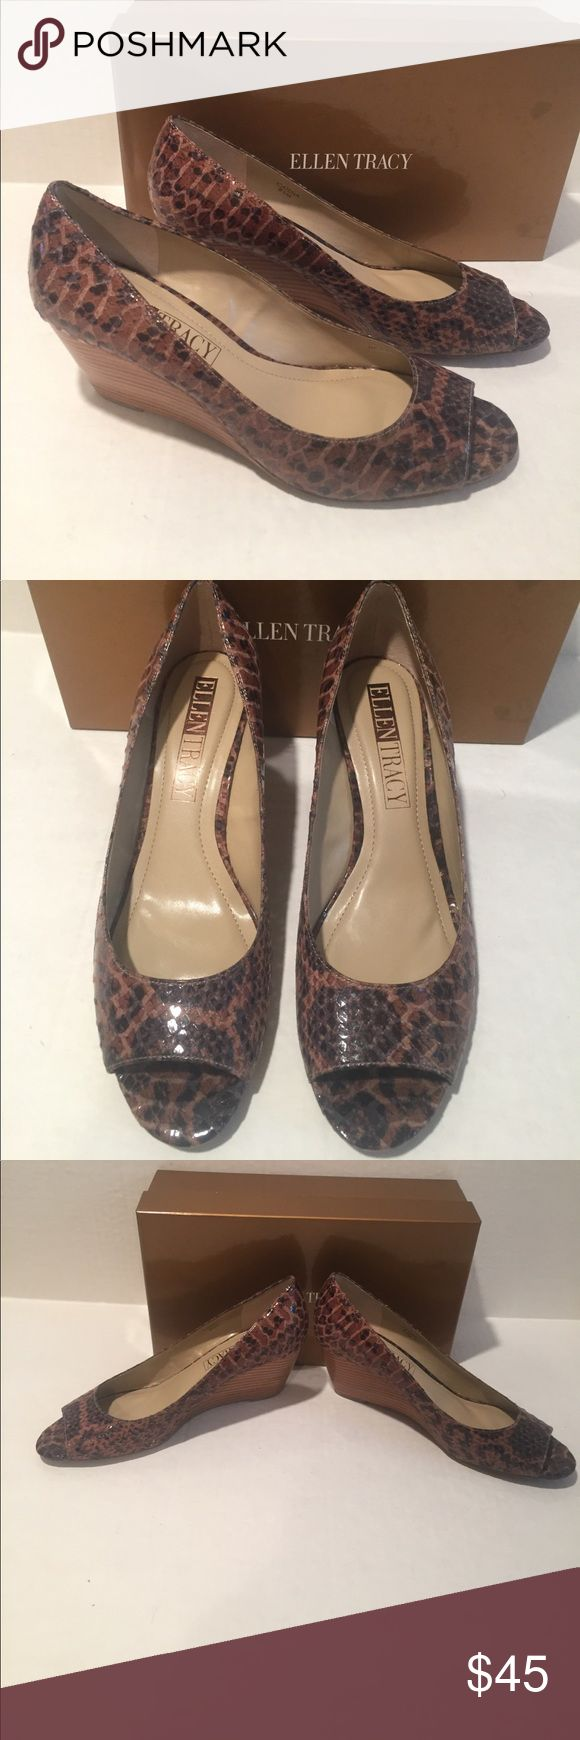 ELLEN TRACY COGNAC SNAKE PRINT PEEP TOE WEDGES 8.5 ELLEN TRACY COGNAC SNAKE PRINT PEEP TOE WEDGES 8.5 Brand new in box. These shoes look great with everything. Please refer to pictures and no trades. Ellen Tracy Shoes Wedges